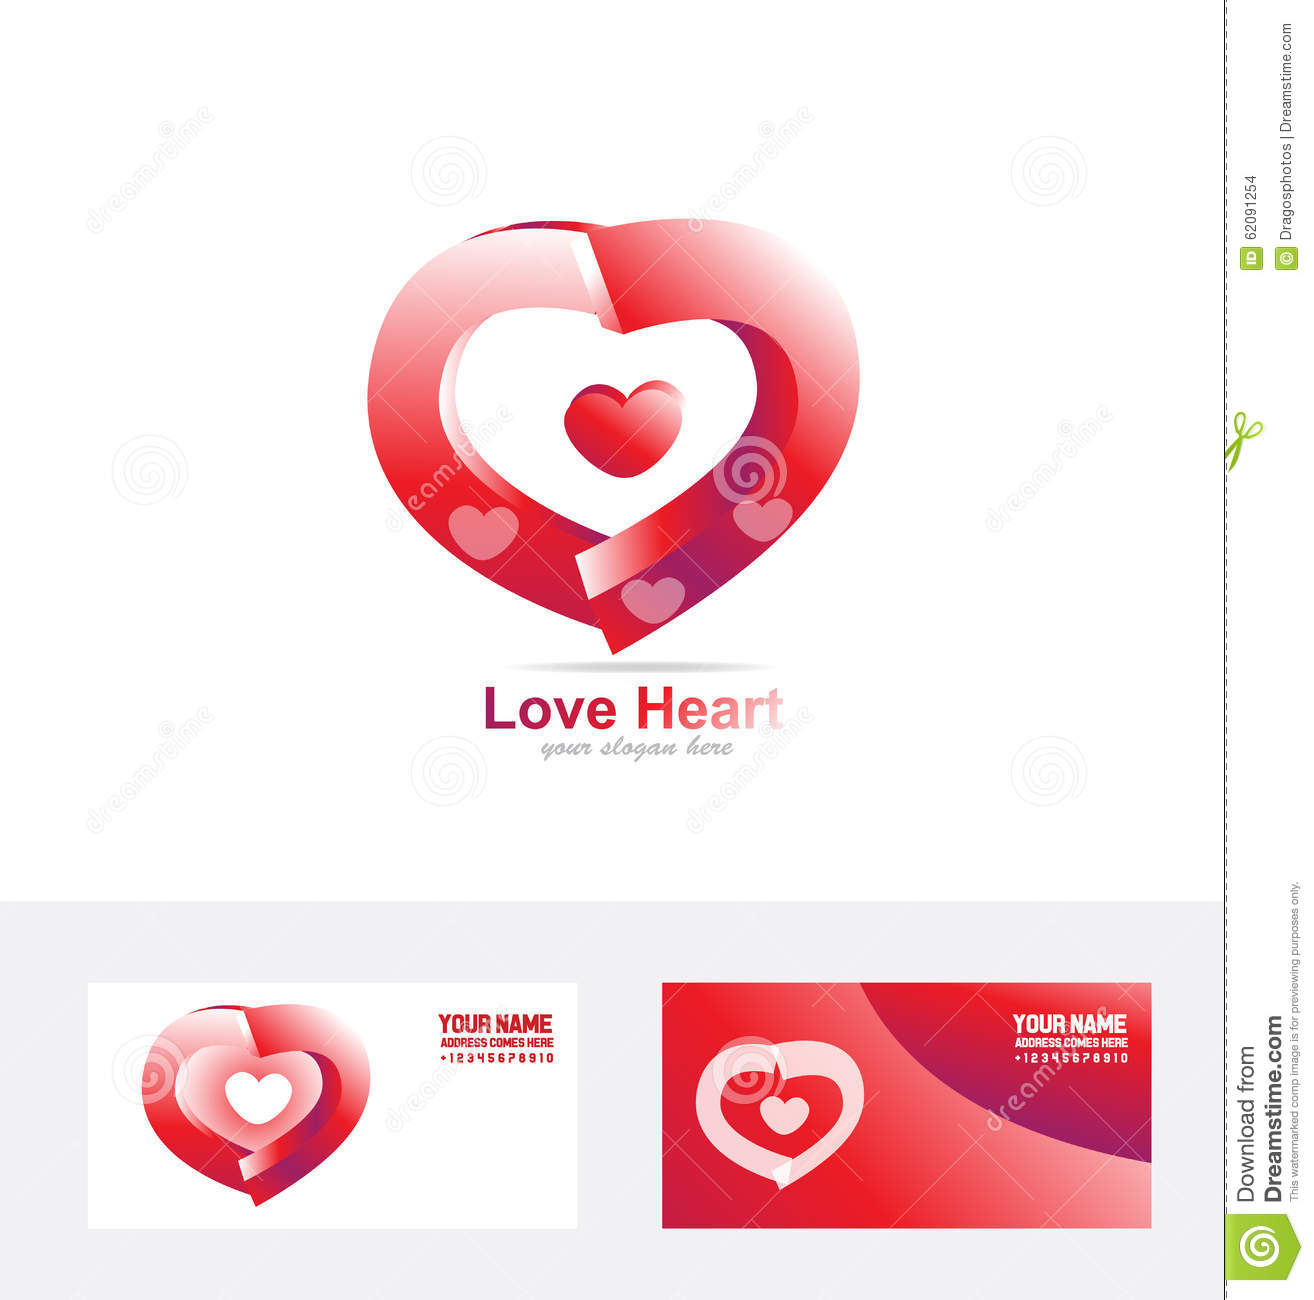 Red Love Heart Logo 3d Stock Vector - Image: 62091254